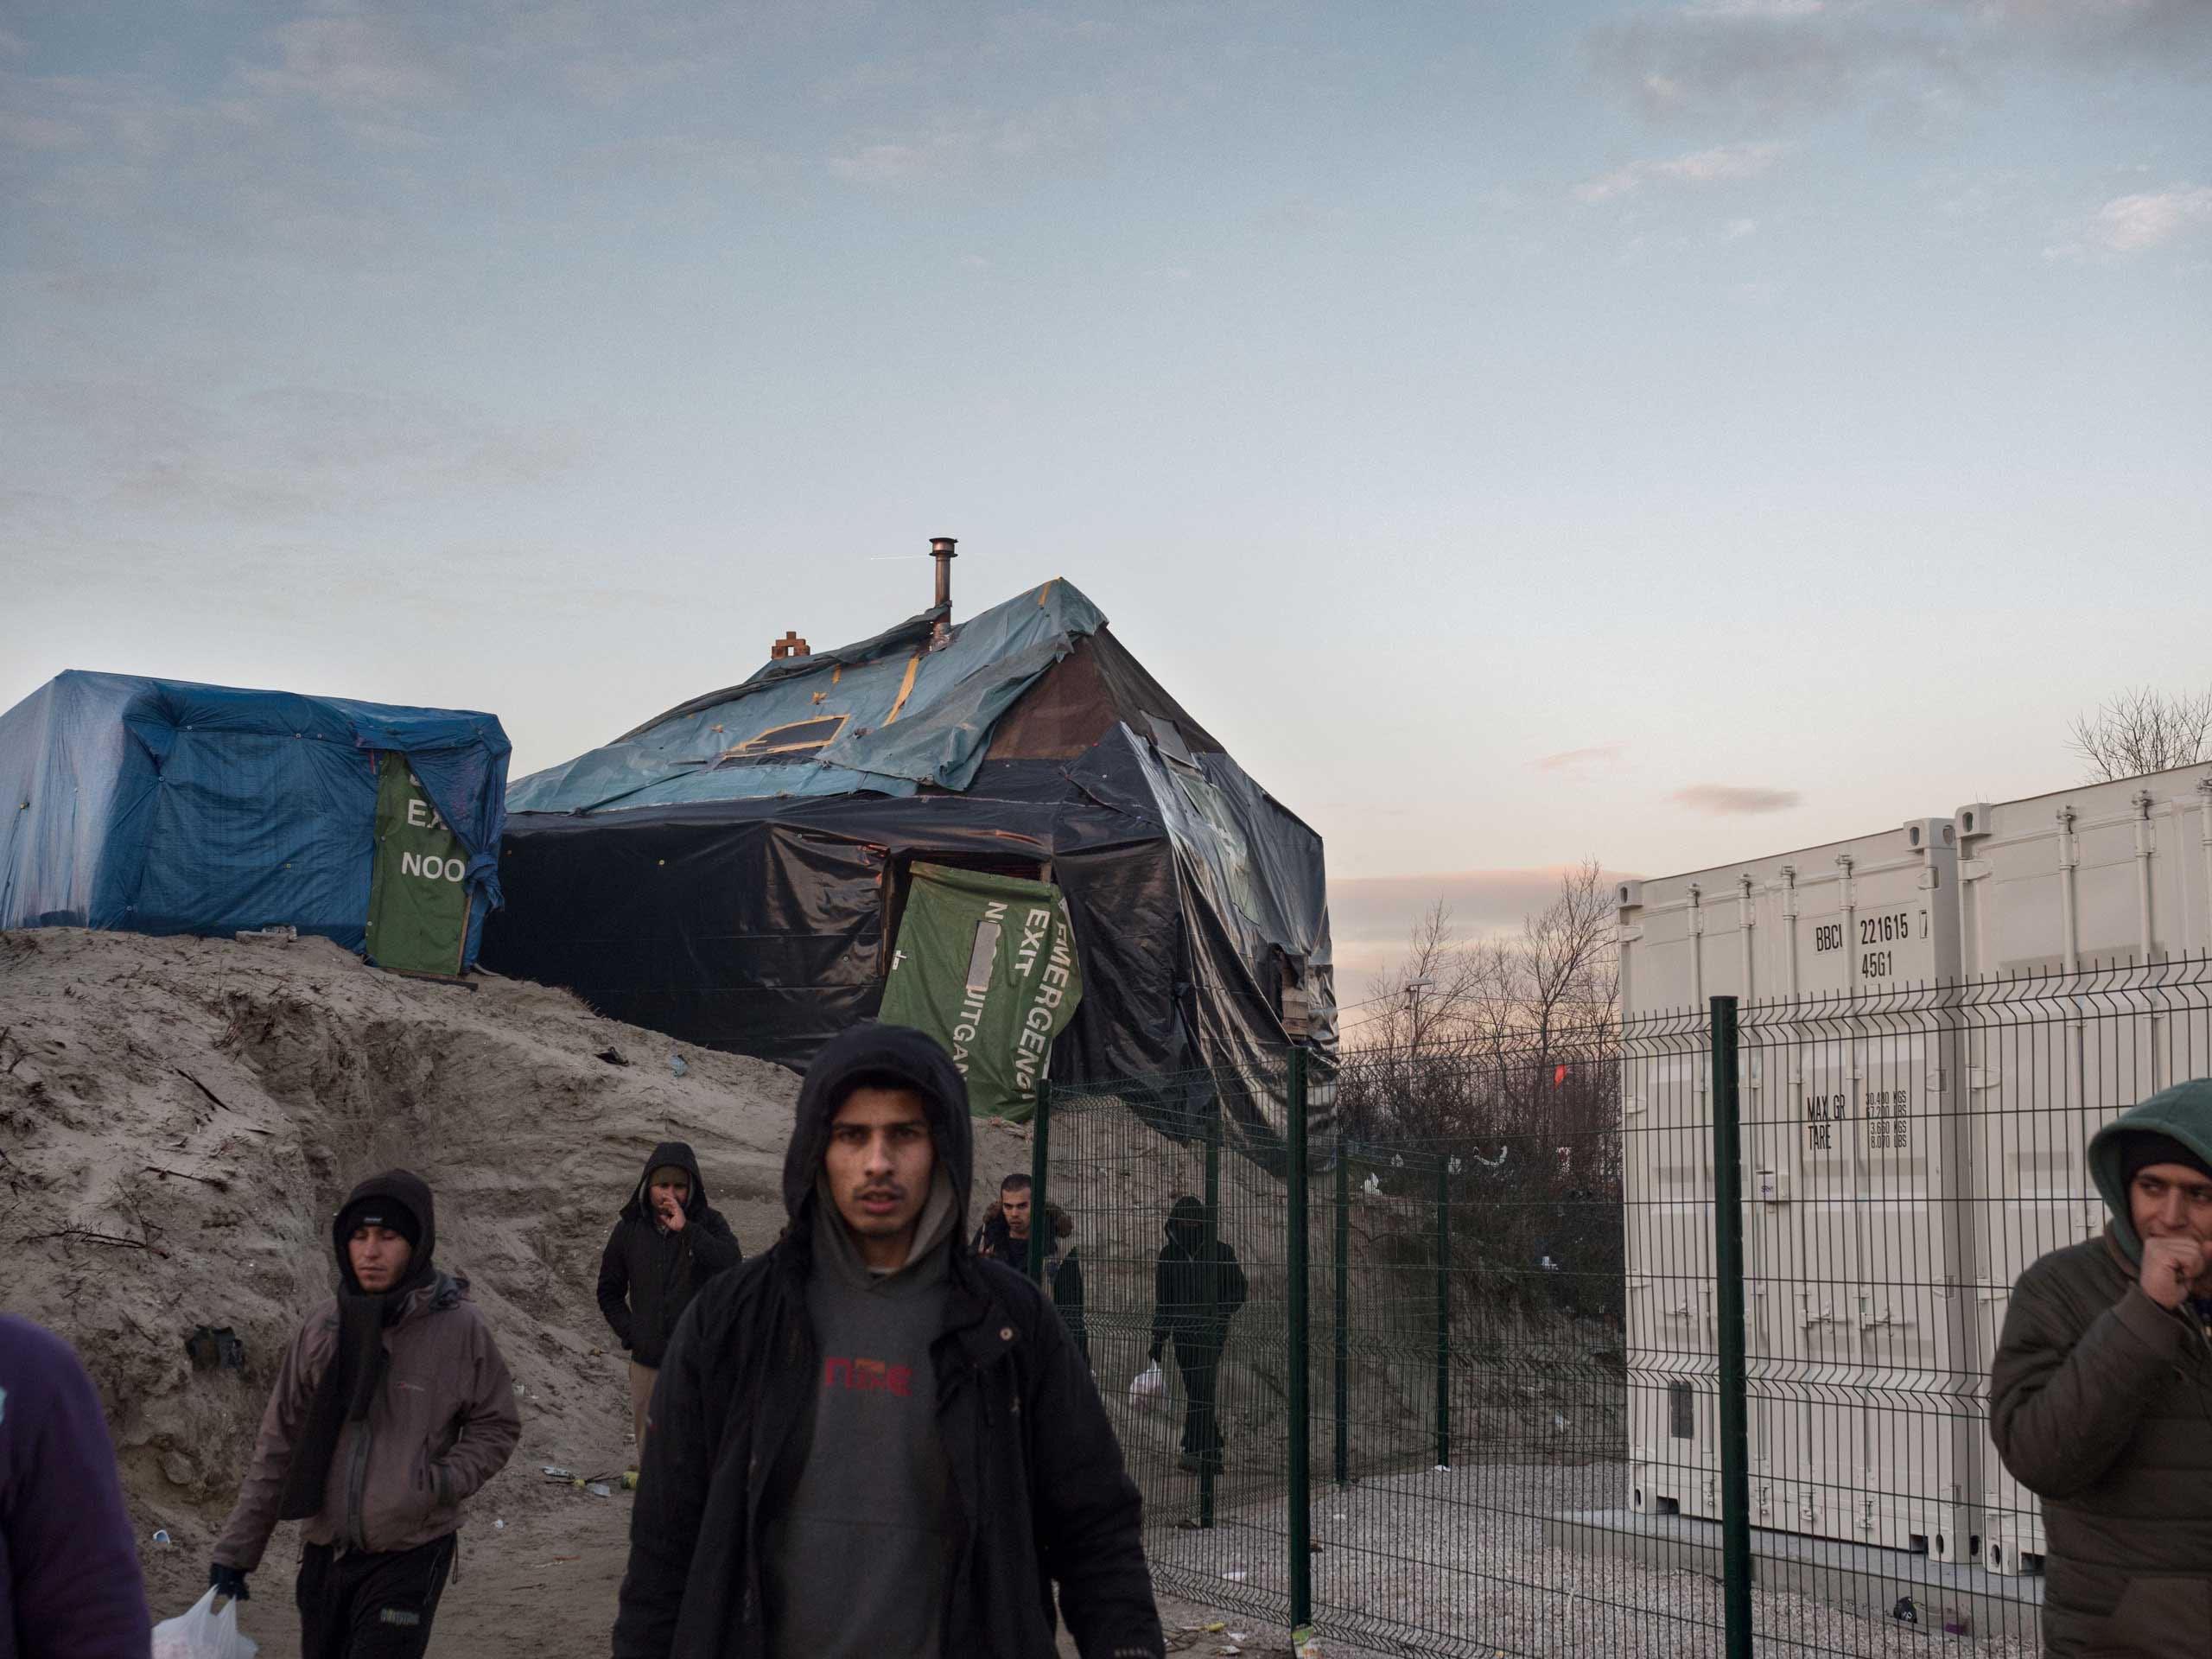 New containers for migrants are now being built that will take the place of tent dwellings in Calais, France, Jan.19, 2016.